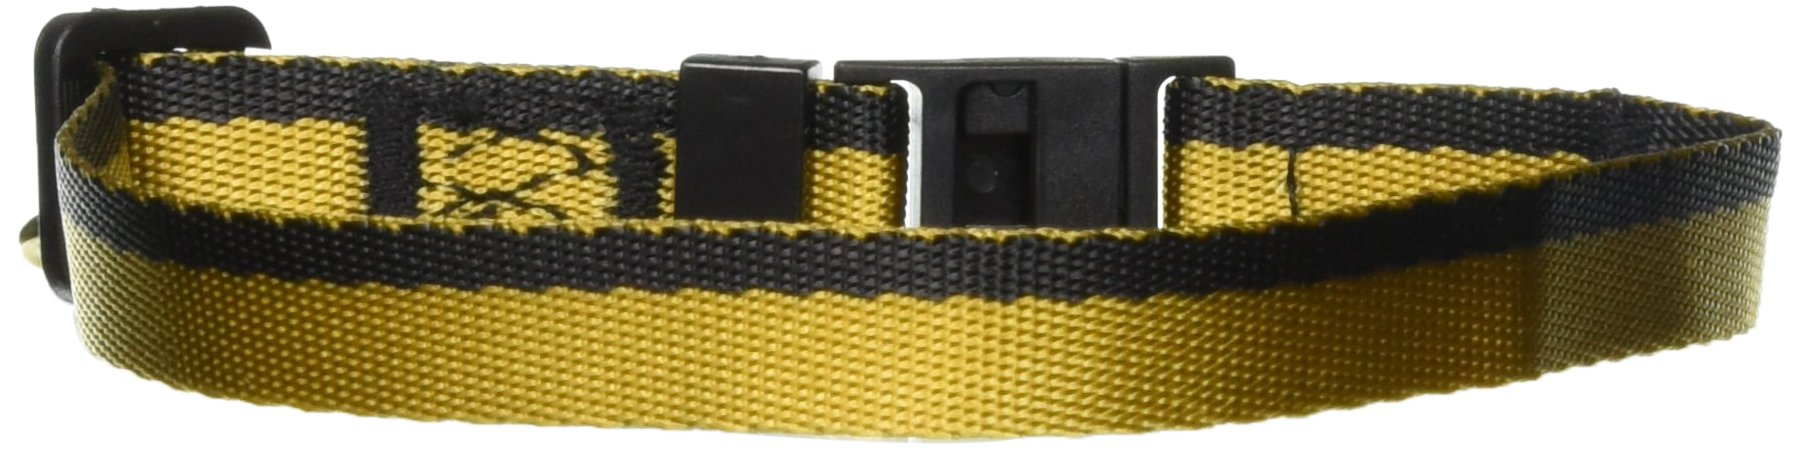 Crowded Coop Star Trek Uniform Cat Collar - Gold